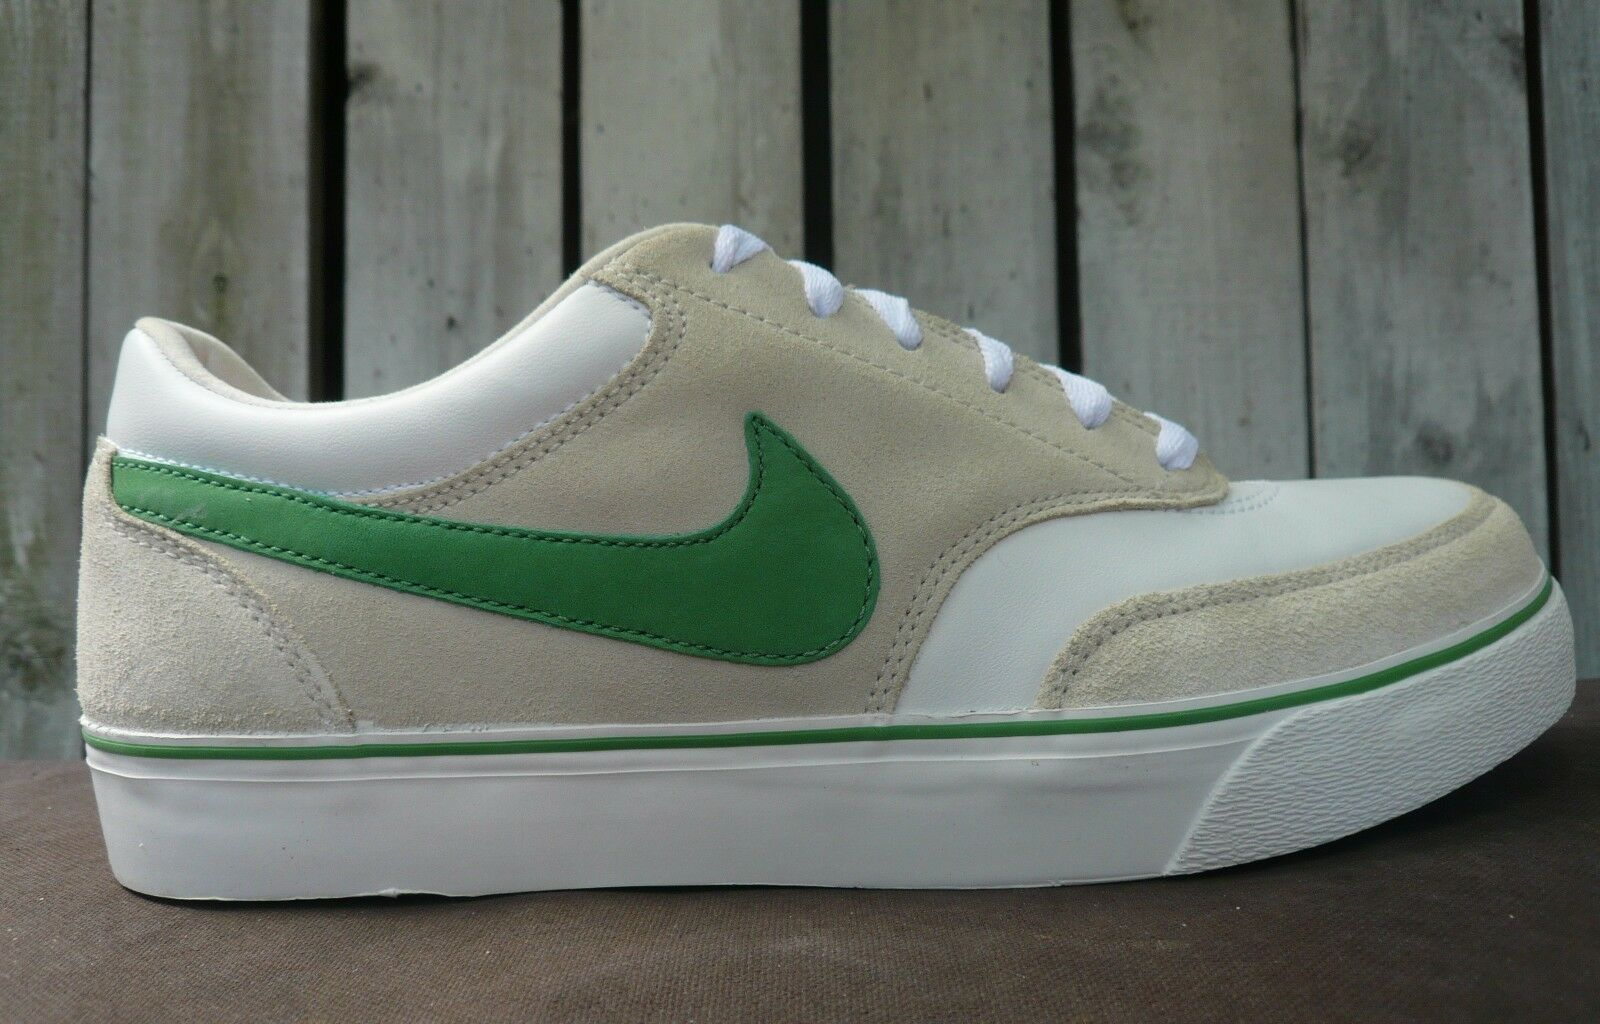 NEW 2007 NIKE ZOOM AIR HARBOUR SB blanc APPLE GREEN PINK CREAM 316049-131 dunk